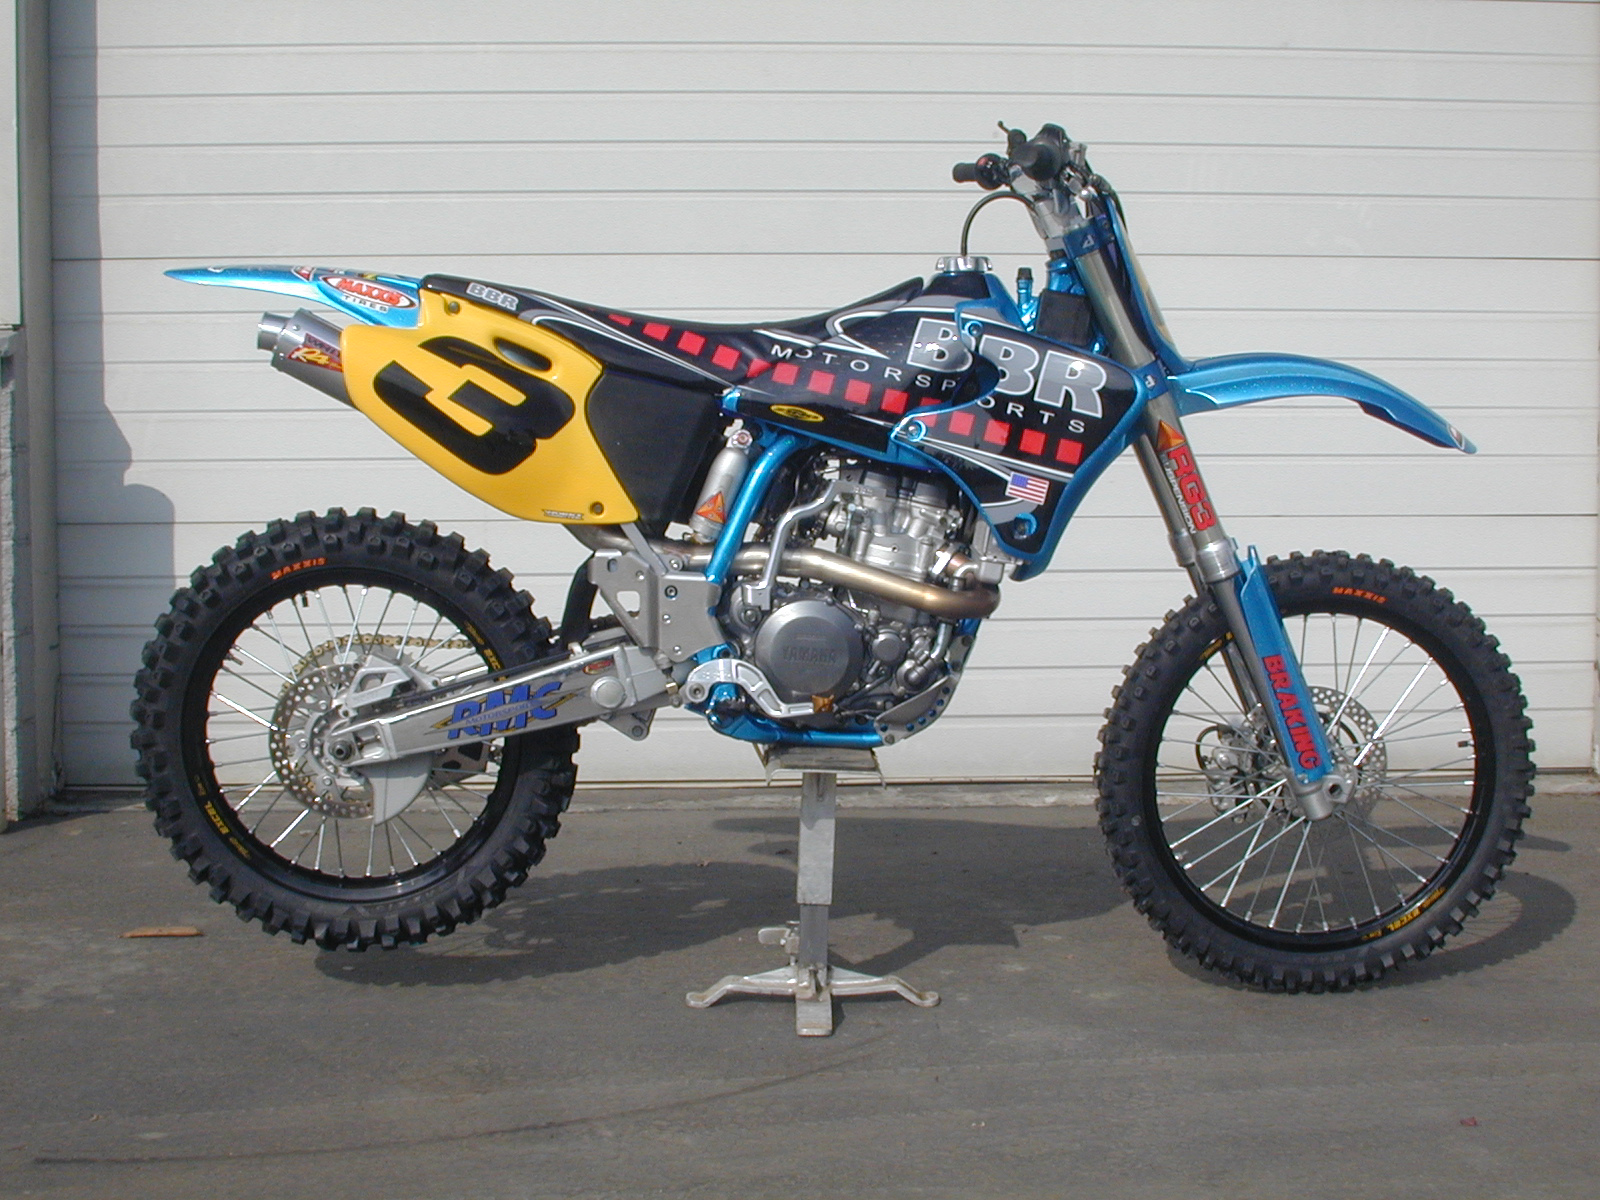 US Open YZ400 Vegas Race Bike - Right Side